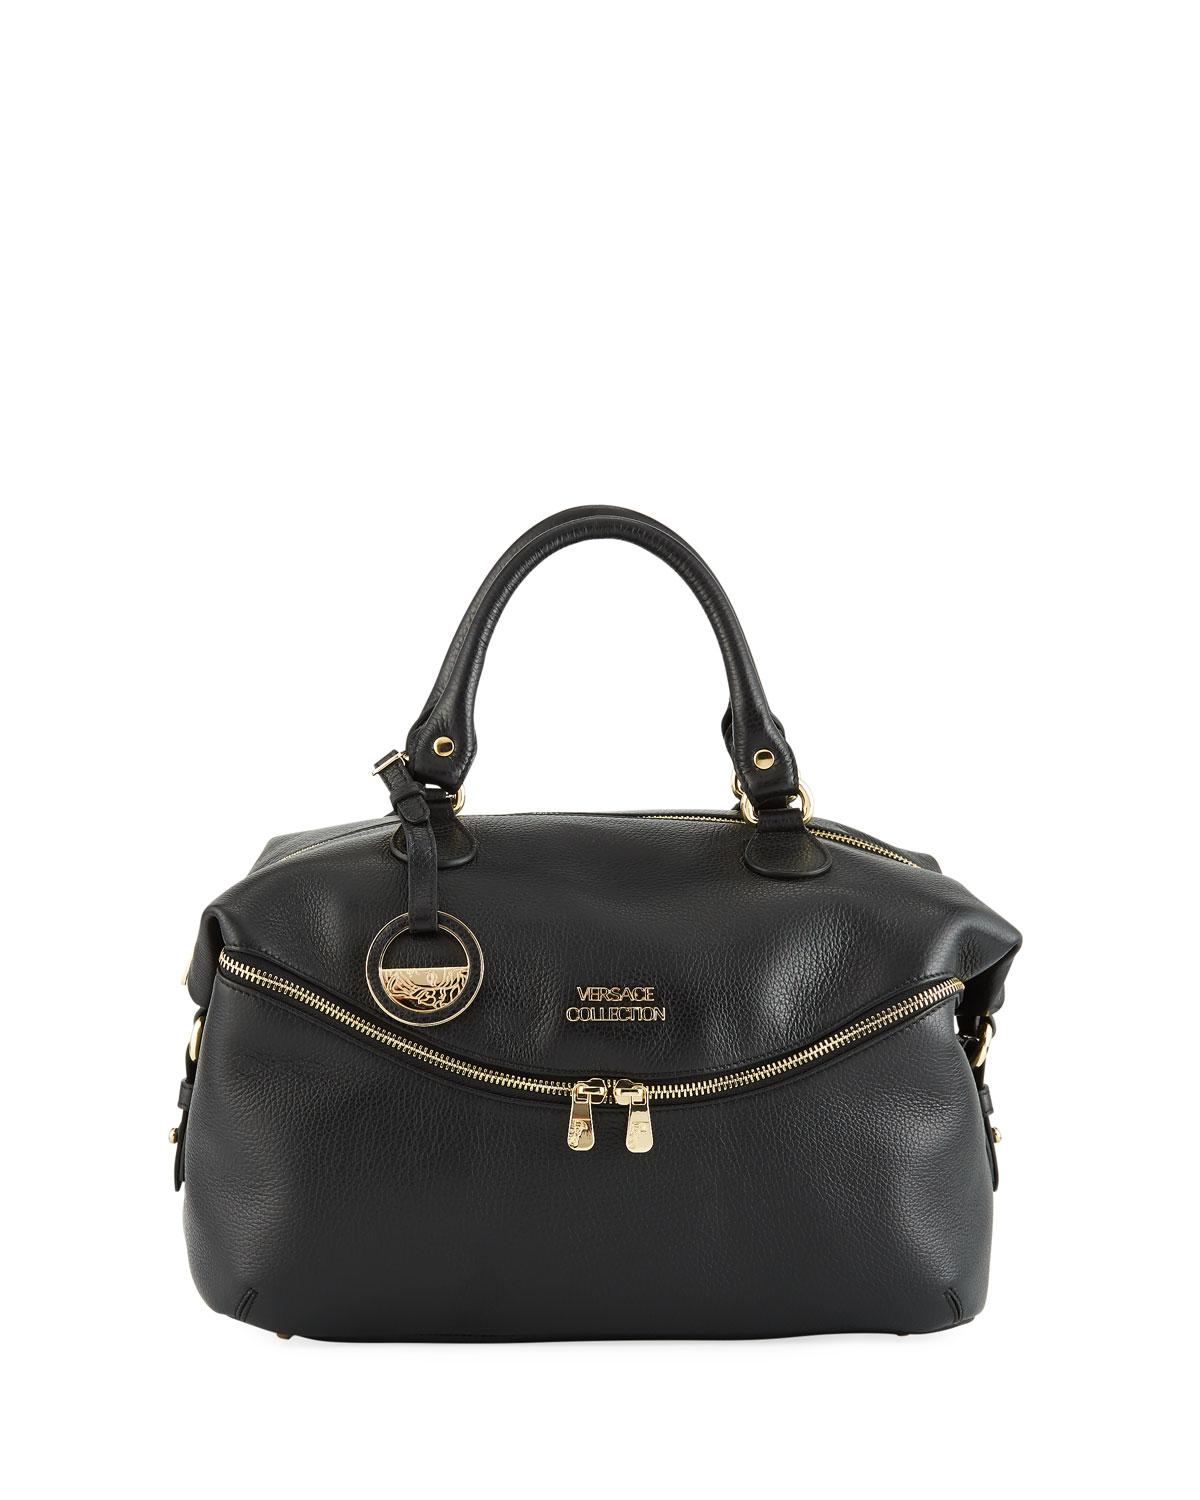 13ab70db03d5 Lyst - Versace Pebbled Leather Top-handle Tote Bag in Black